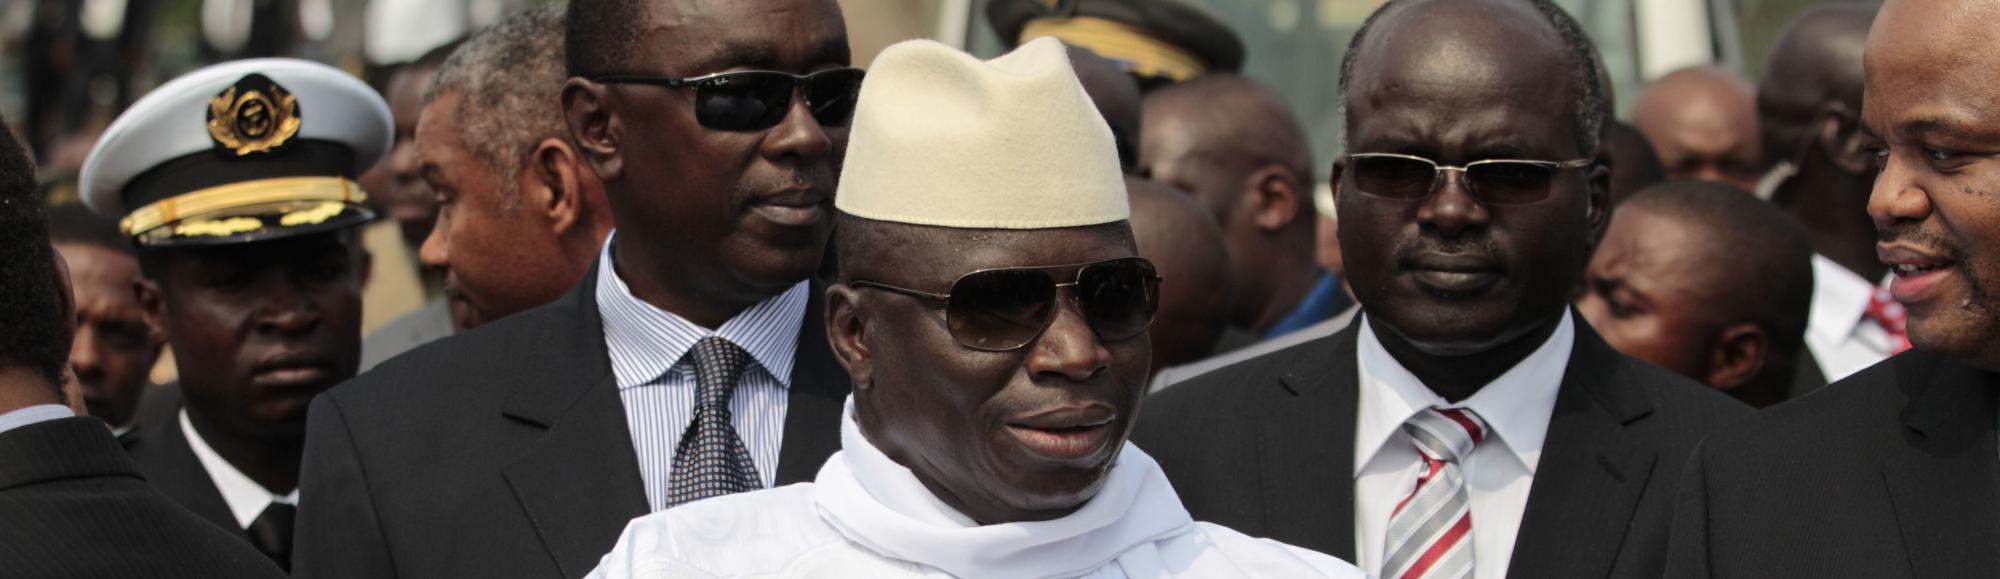 Gambian President Says He Will Slit Gay Men's Throats in Public Speech